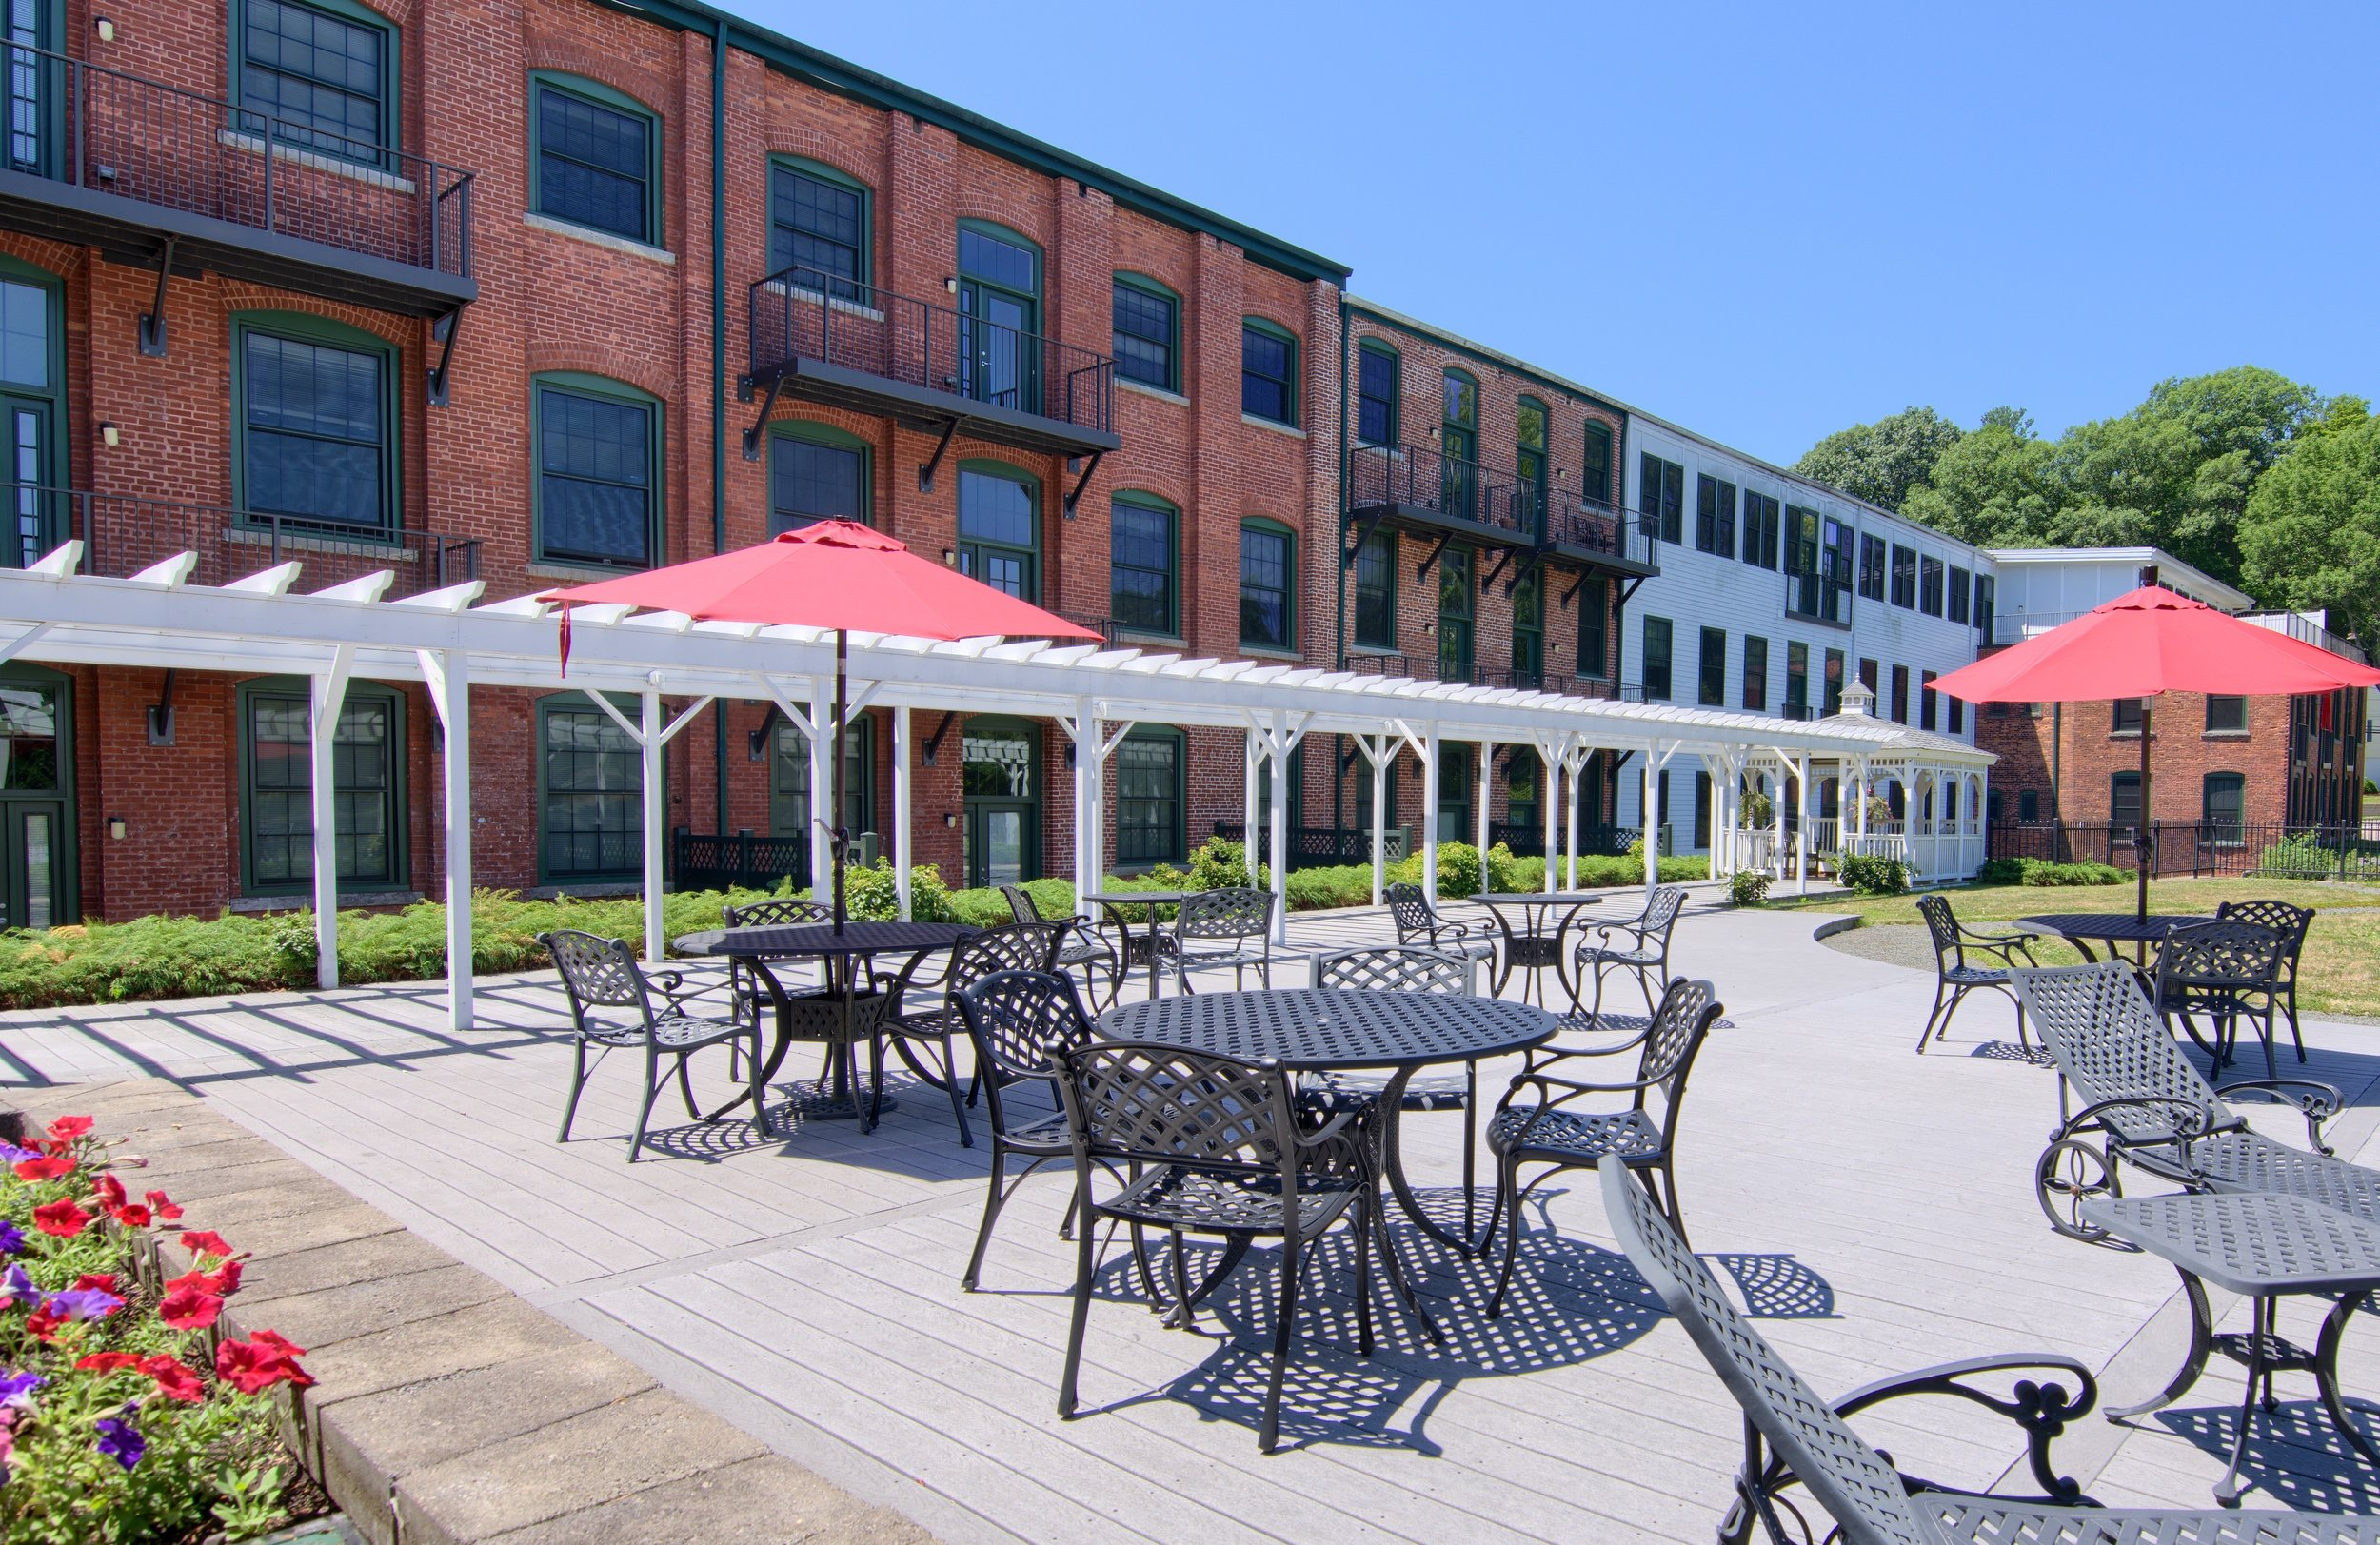 Escape Outdoors - Enjoy sweeping of Addison Pond with easy access to the heart of Glastonbury, Whole Foods, shopping, fine dining, and Hartford.